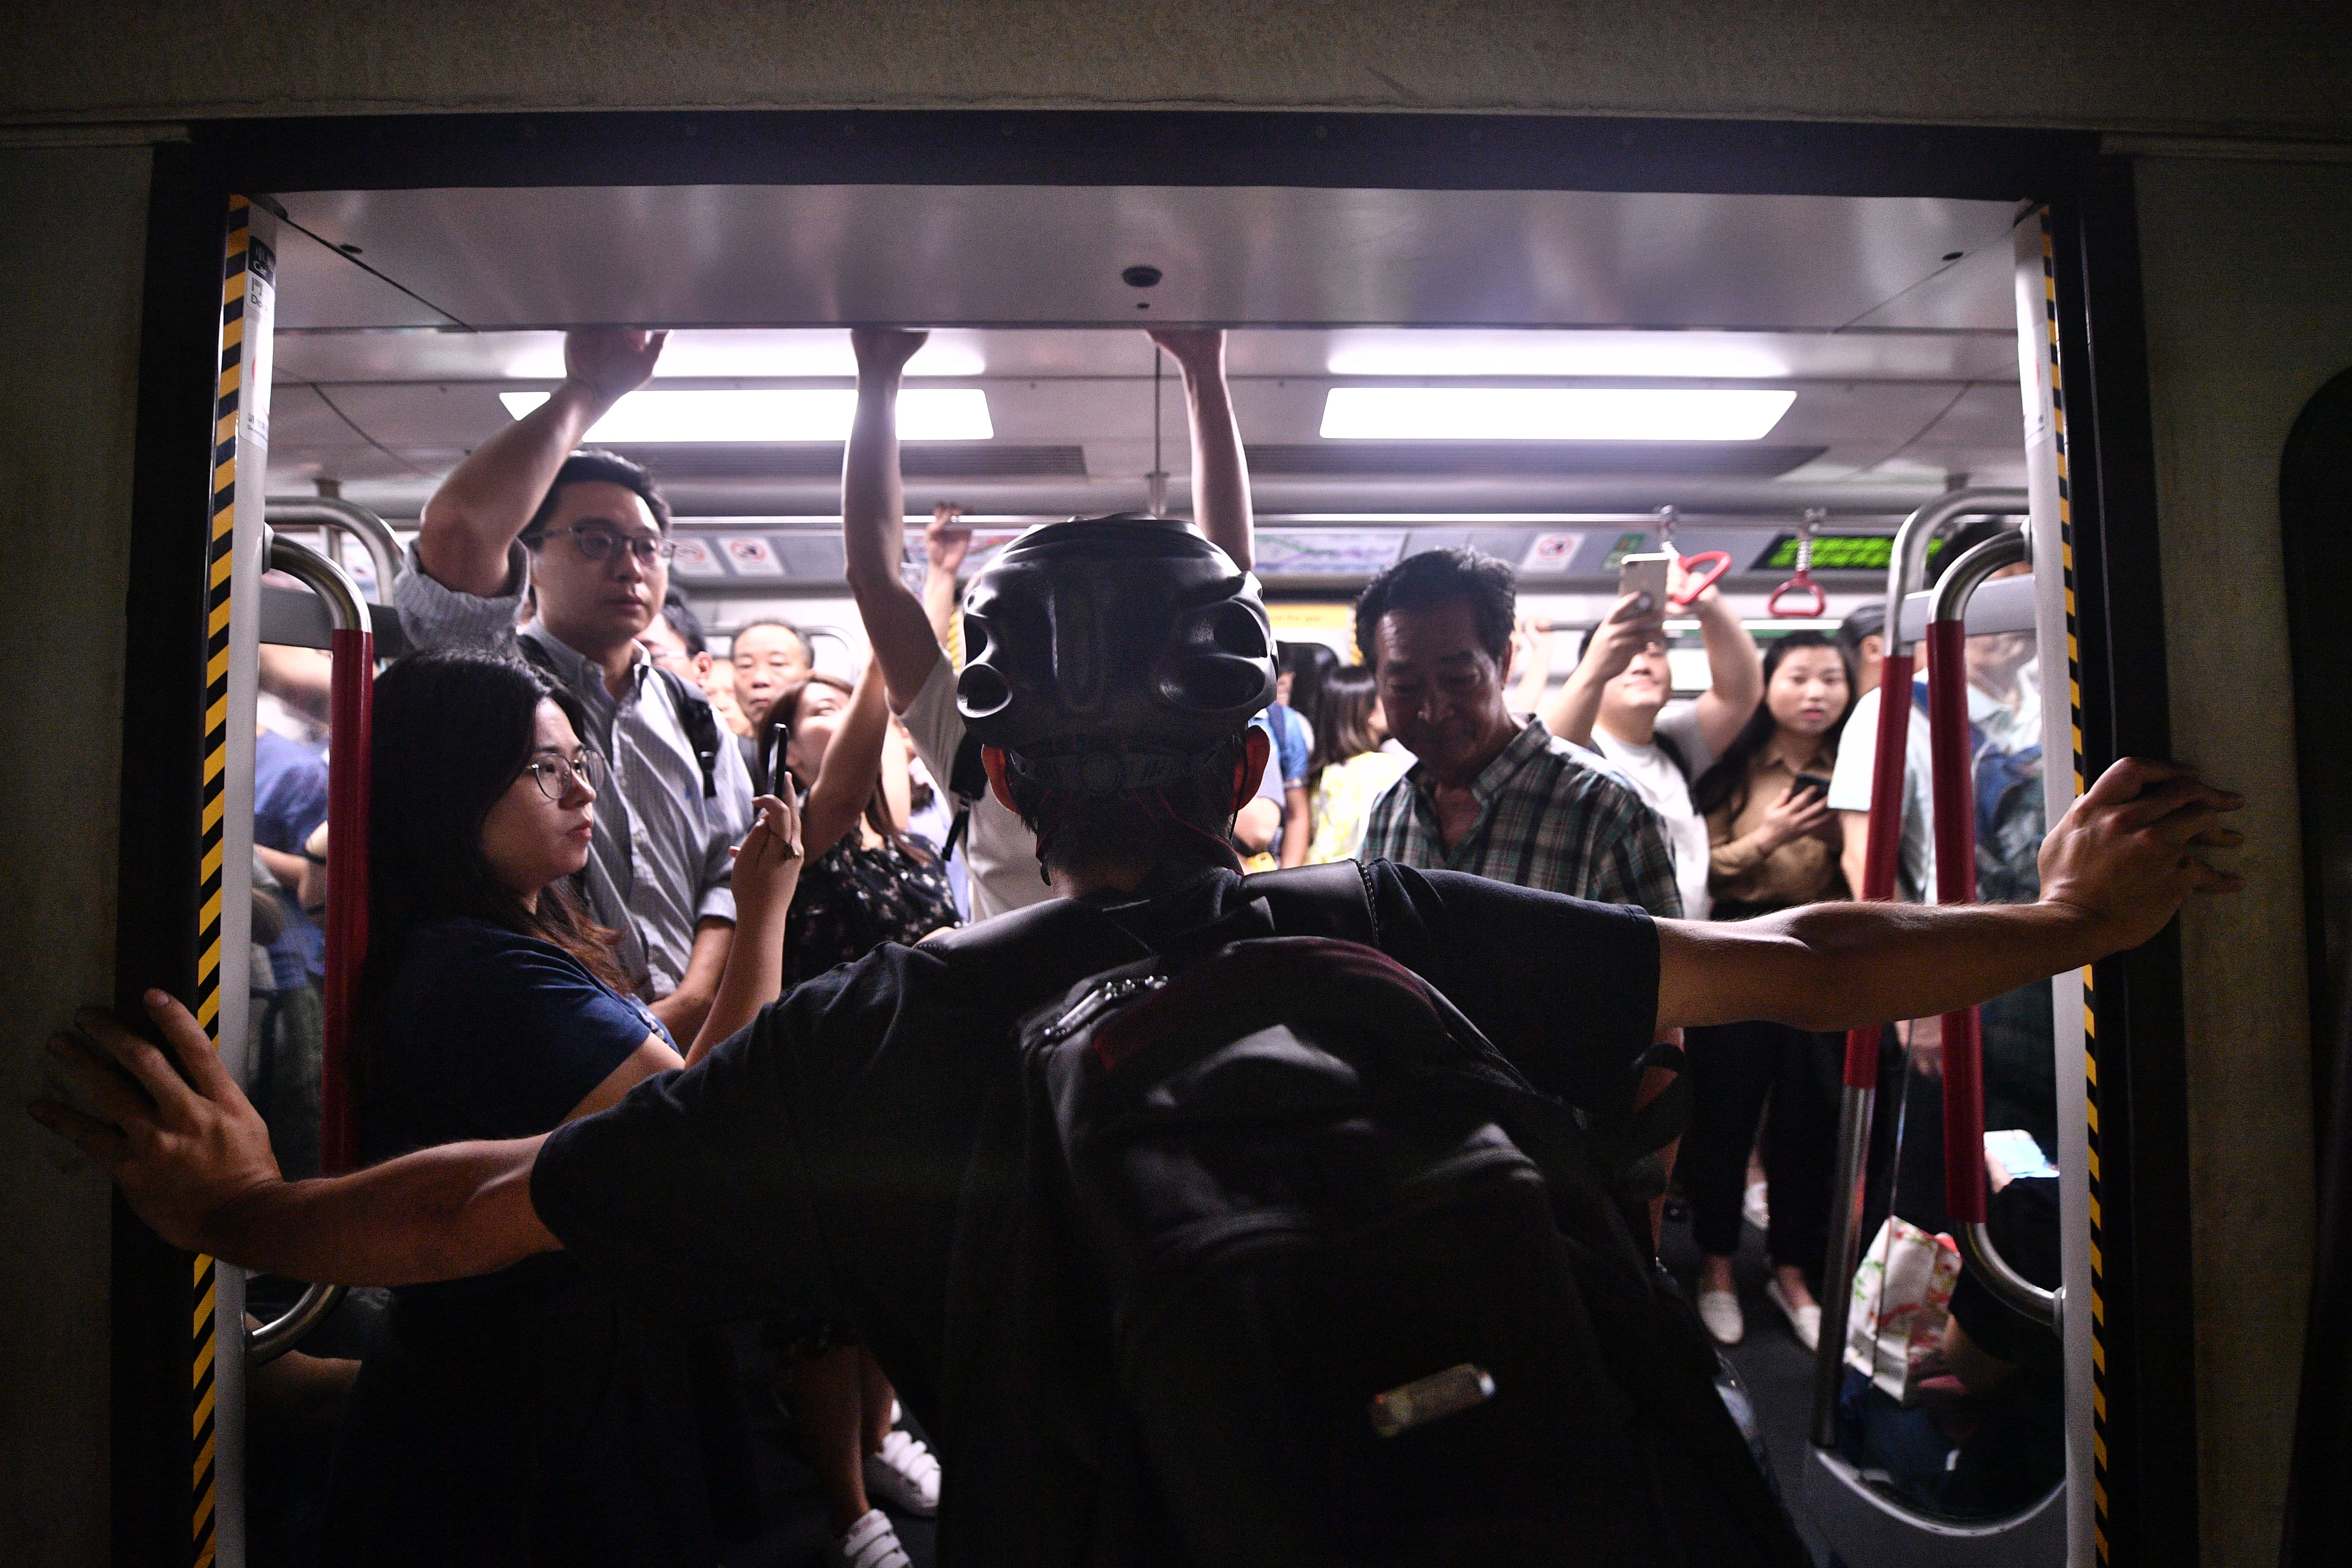 Hong Kong's main public train system struggles to serve commuters amid protests thumbnail